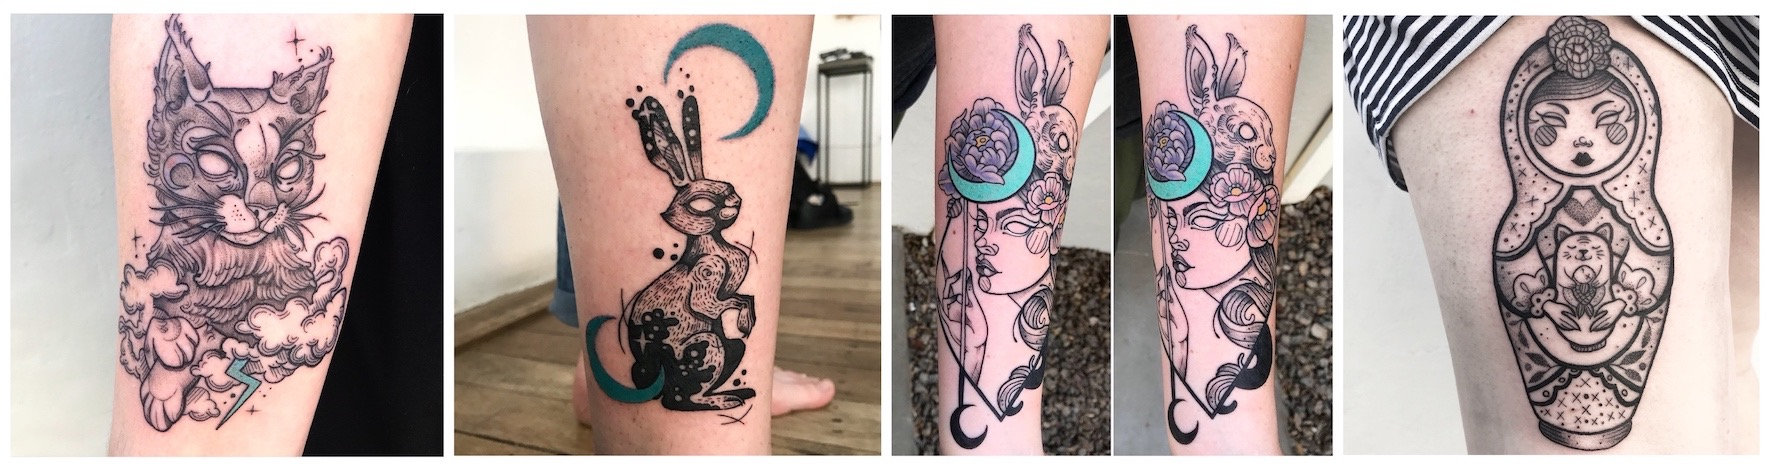 A selection of illustrative tattoos done by Roxy Rose